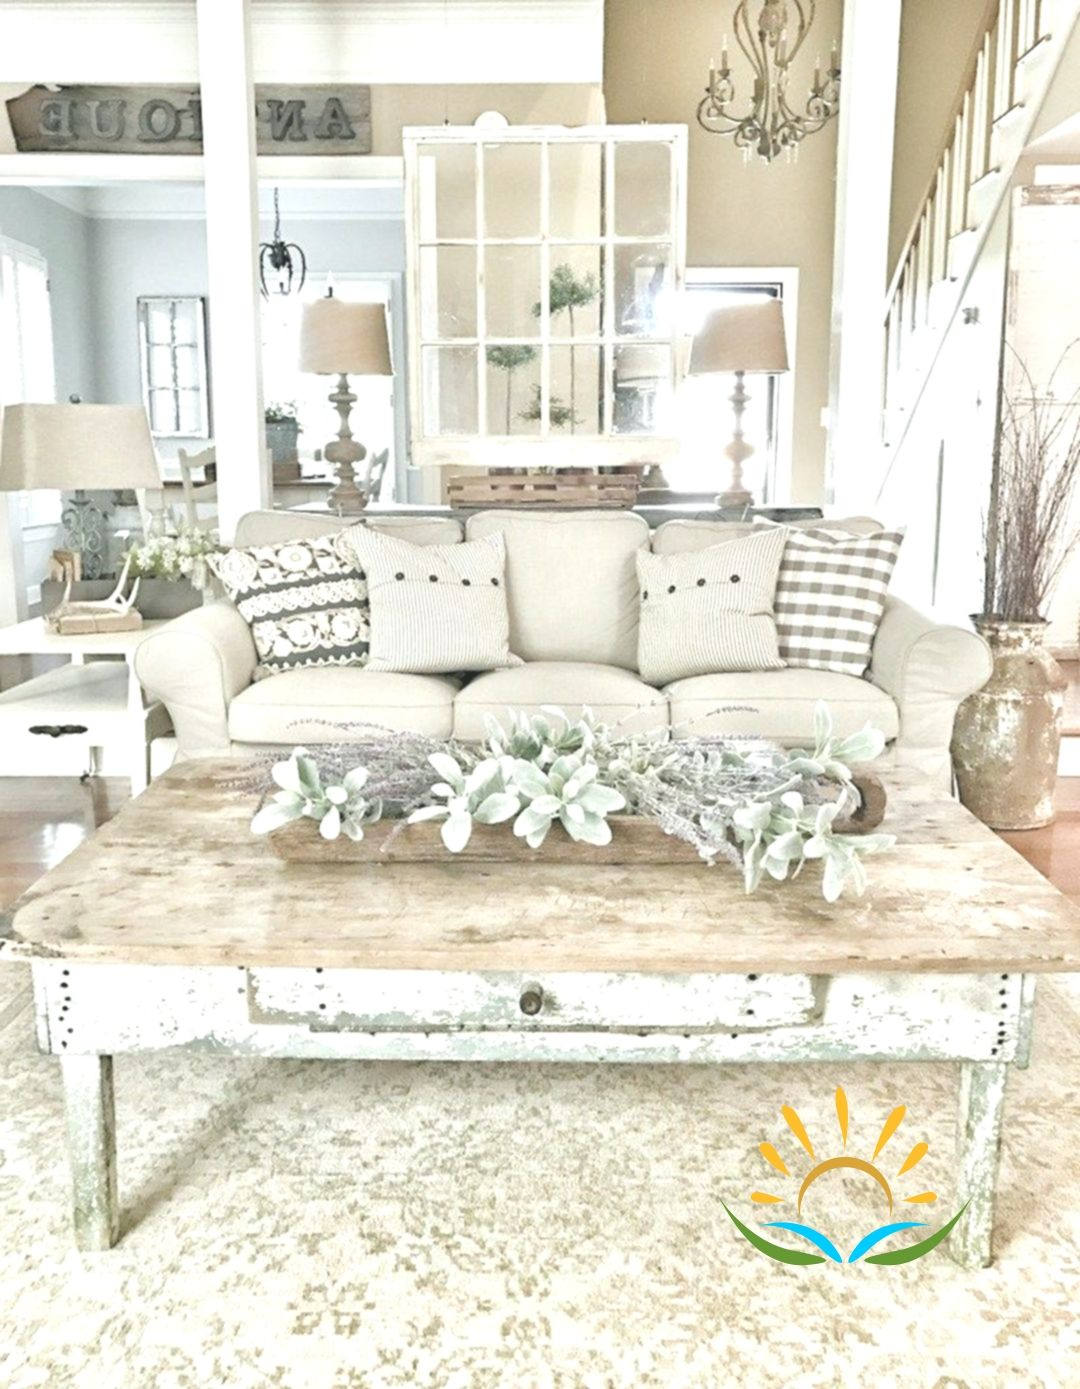 From an industrial loft to a rustic space, this collection of inspiring living room ideas will make you want to refresh your own space today. 25 Awesome Shabby Chic Apartment Living Room Design And Decor Ideas Freshouz Com Apartment Living Room Design Chic Living Room French Country Living Room